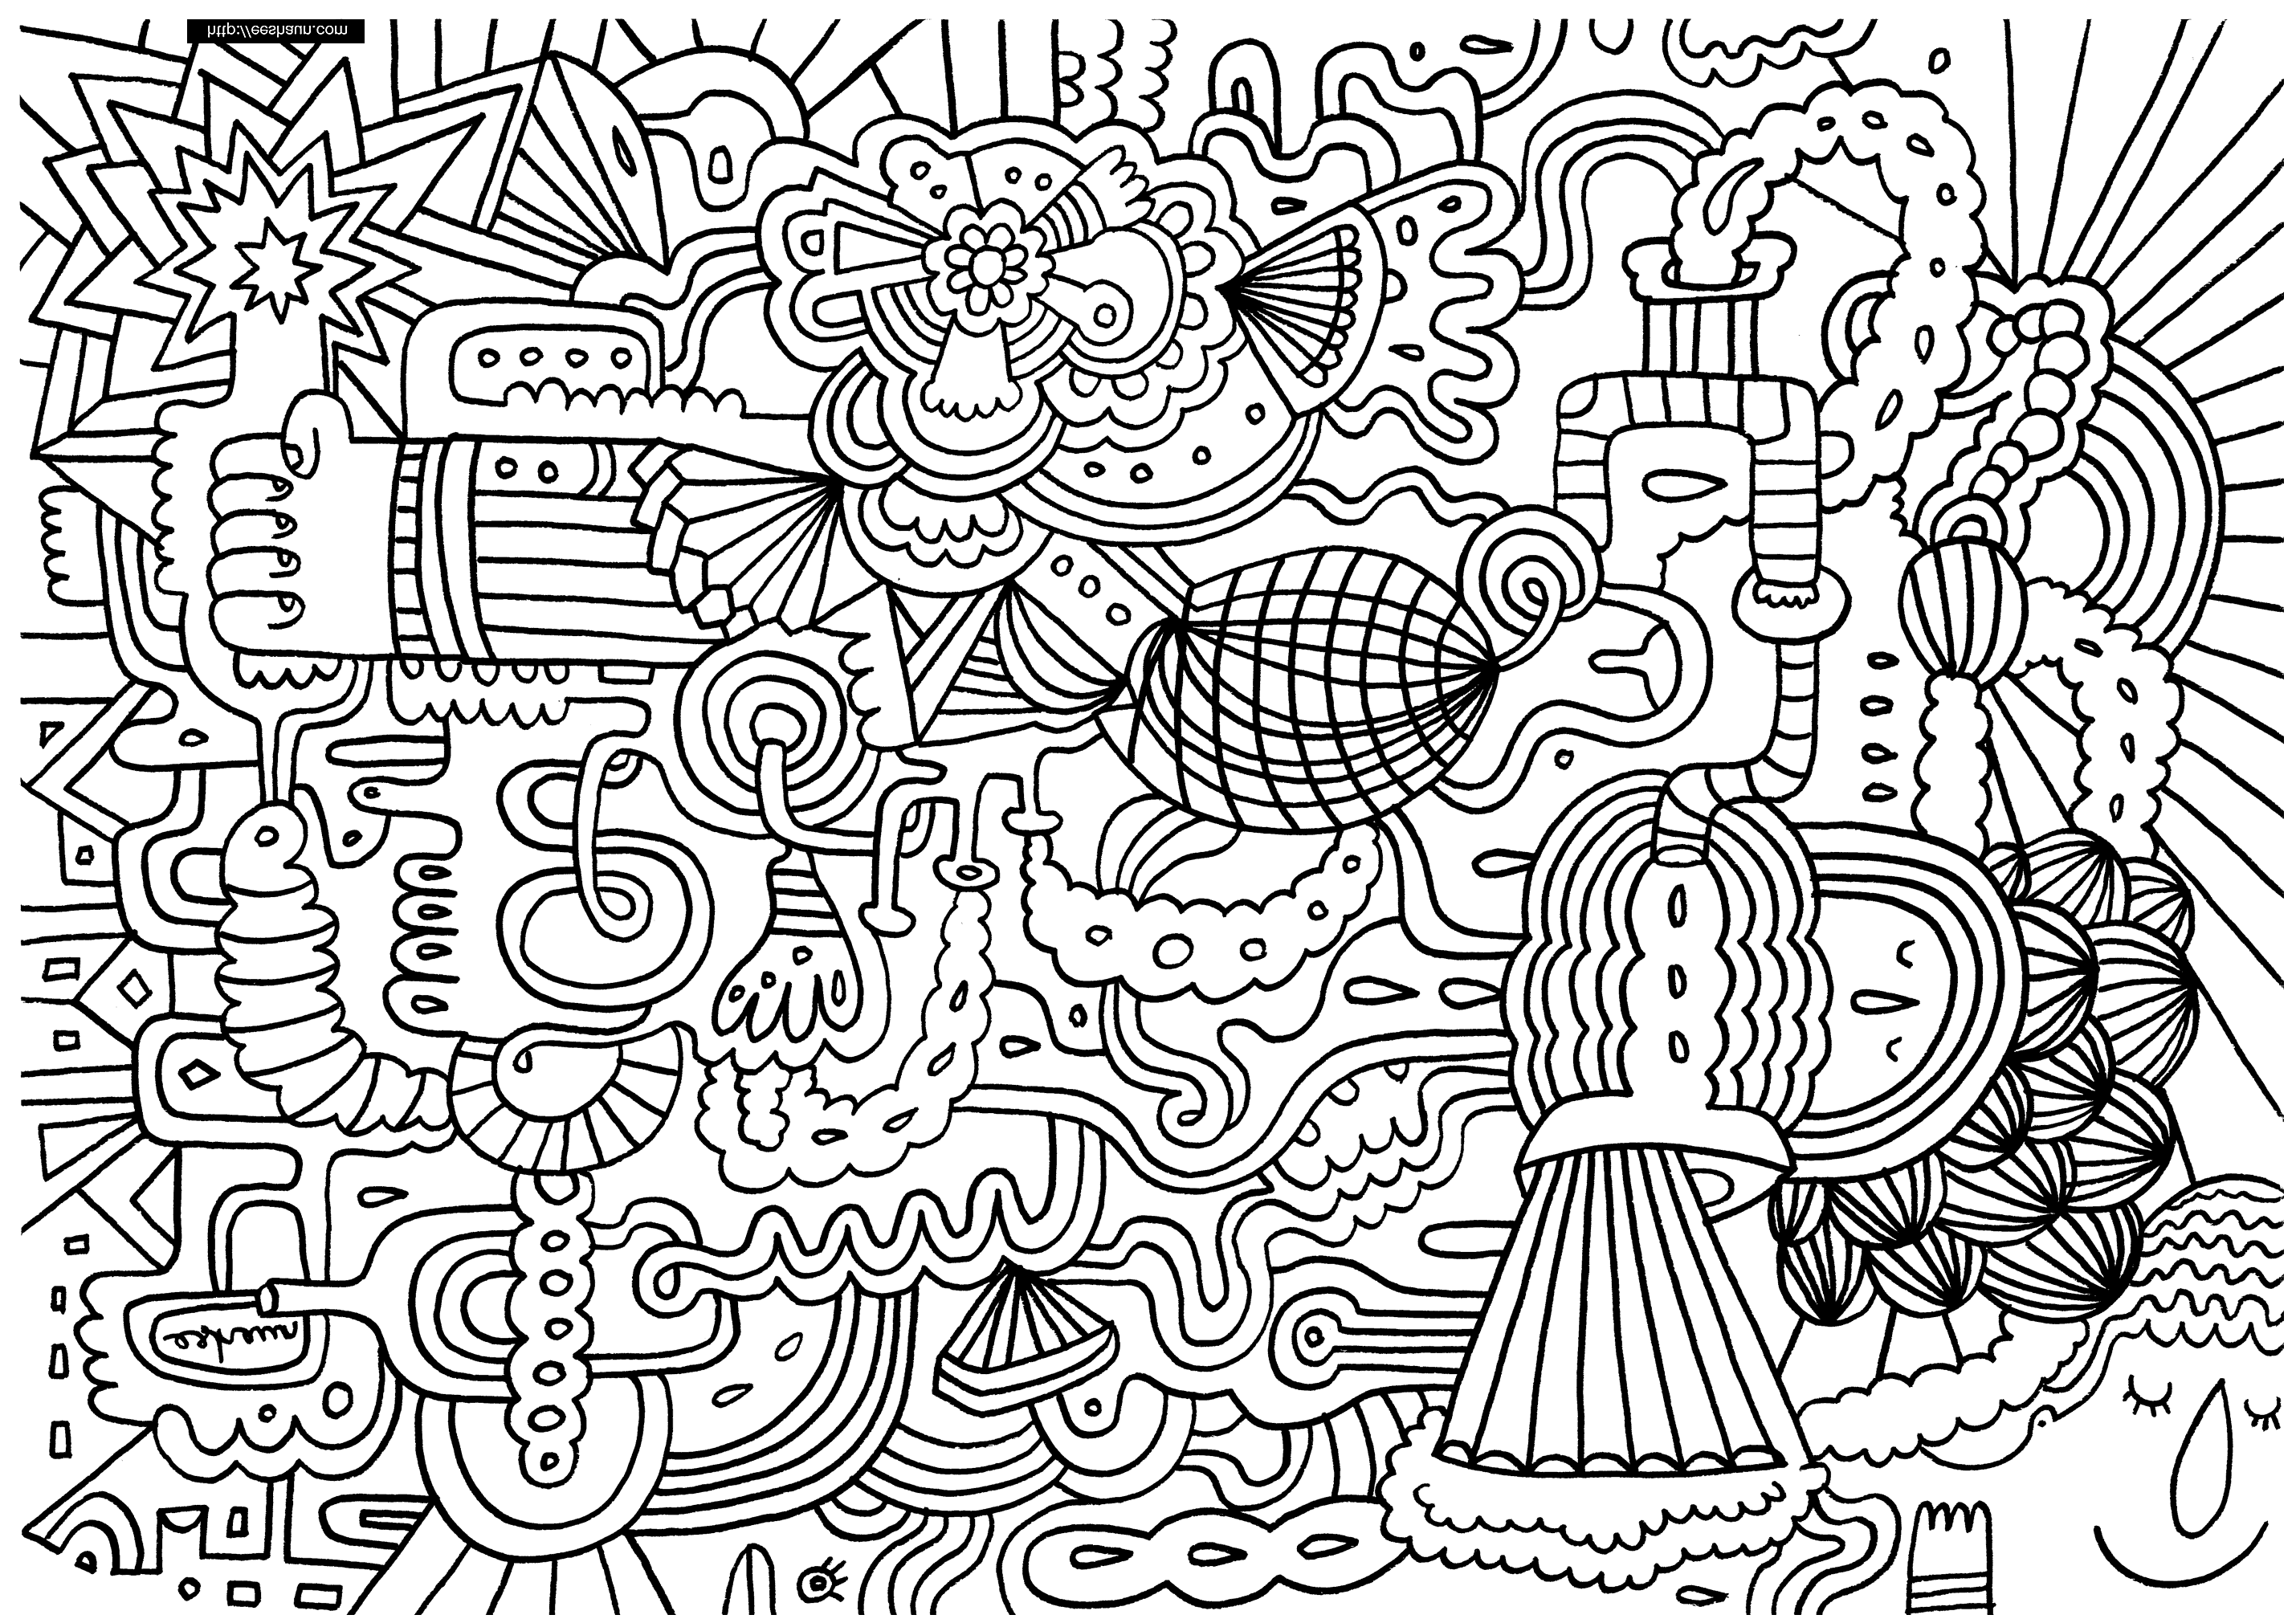 kids drawings for colouring doodle art to print for free doodle art kids coloring pages for kids colouring drawings